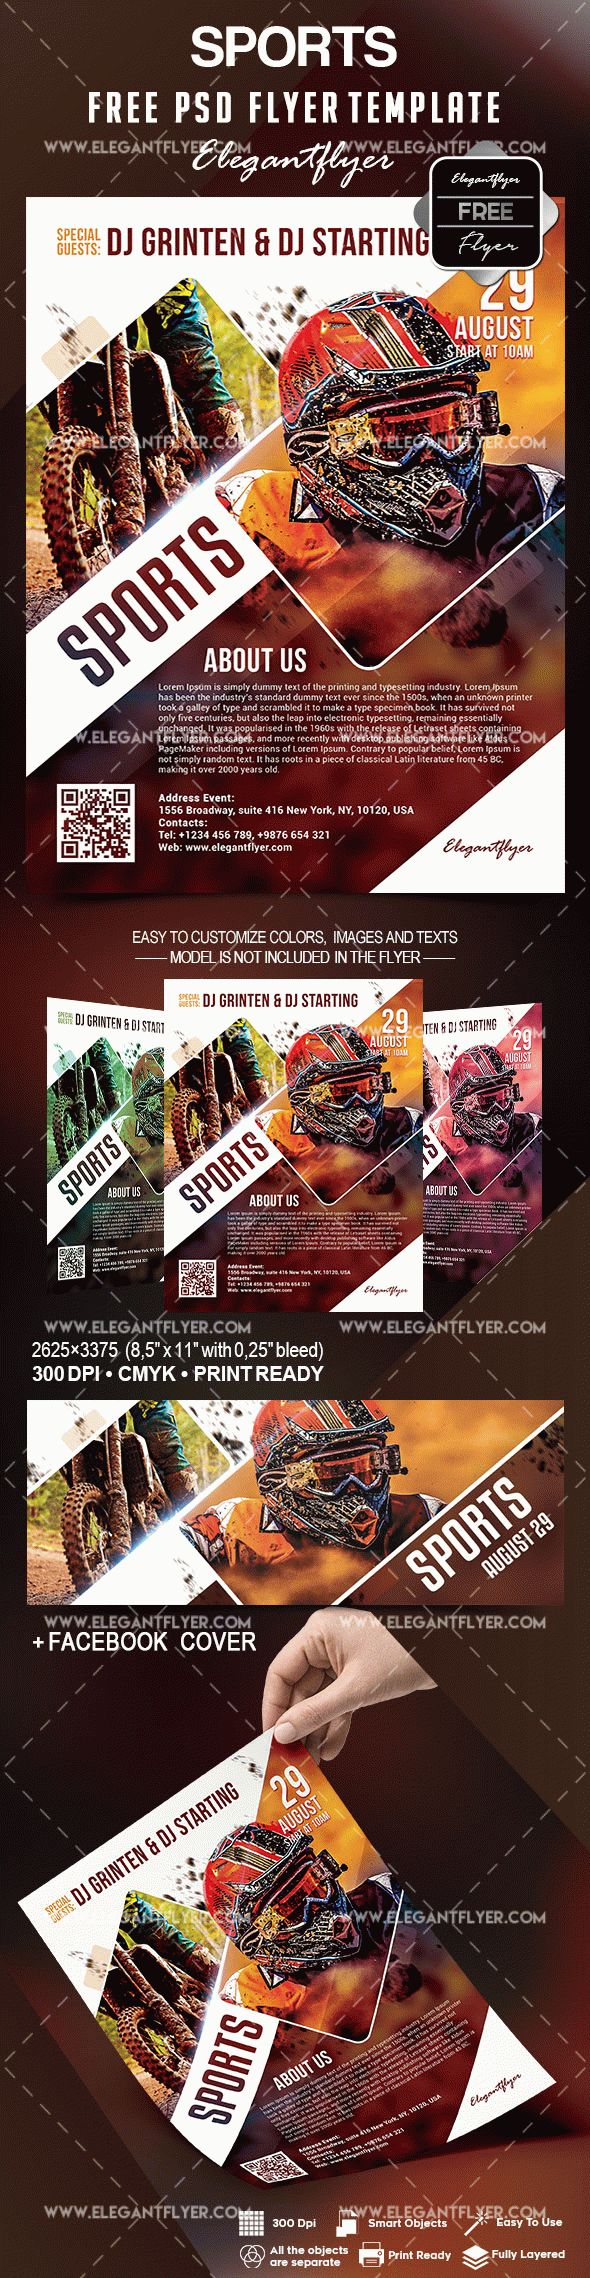 Free Sports Flyer Template Flyer Template Event Flyer Templates